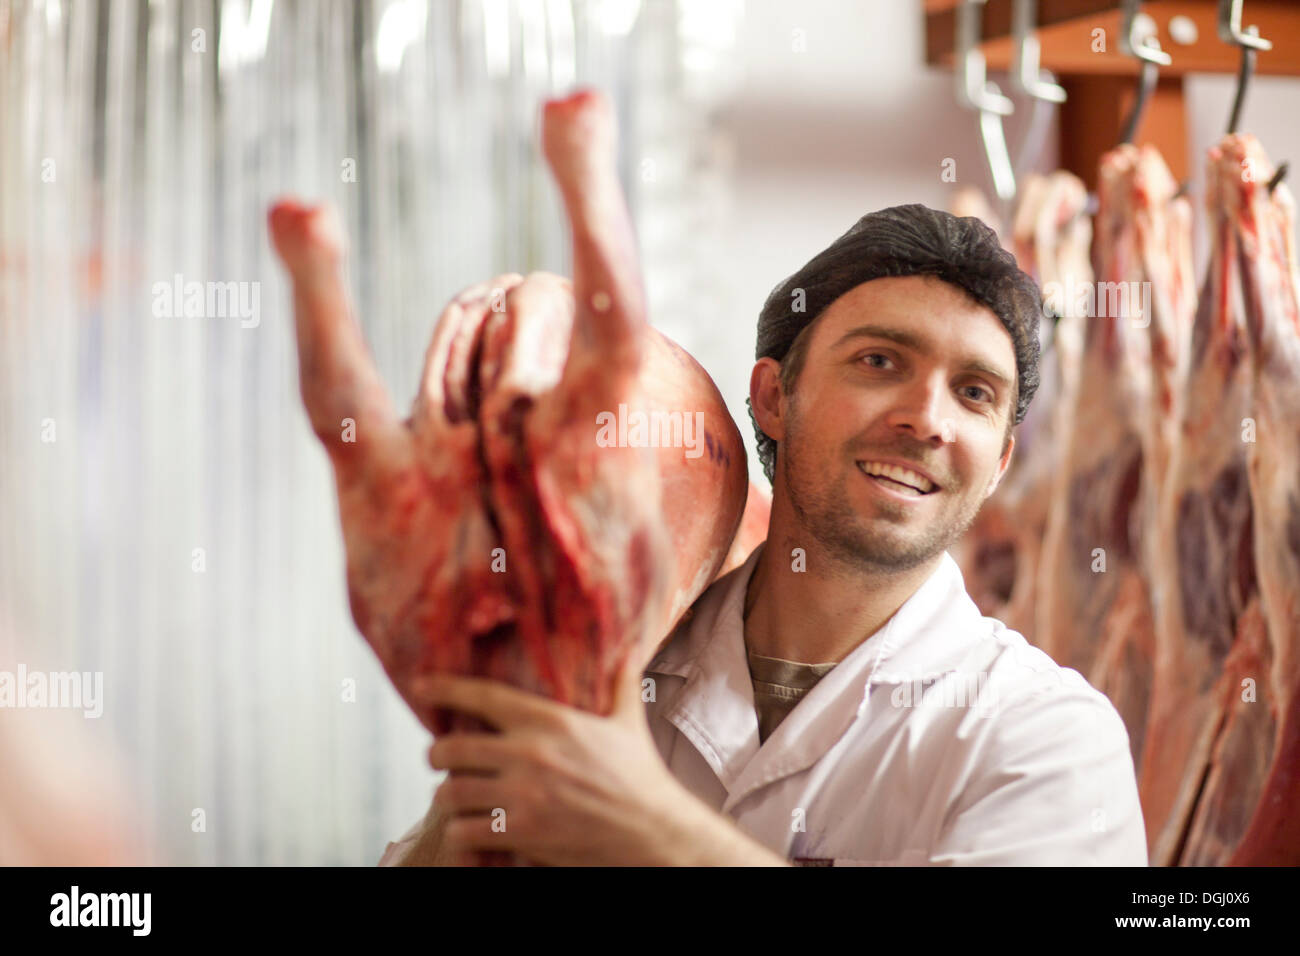 Butcher holding carcass over shoulder - Stock Image